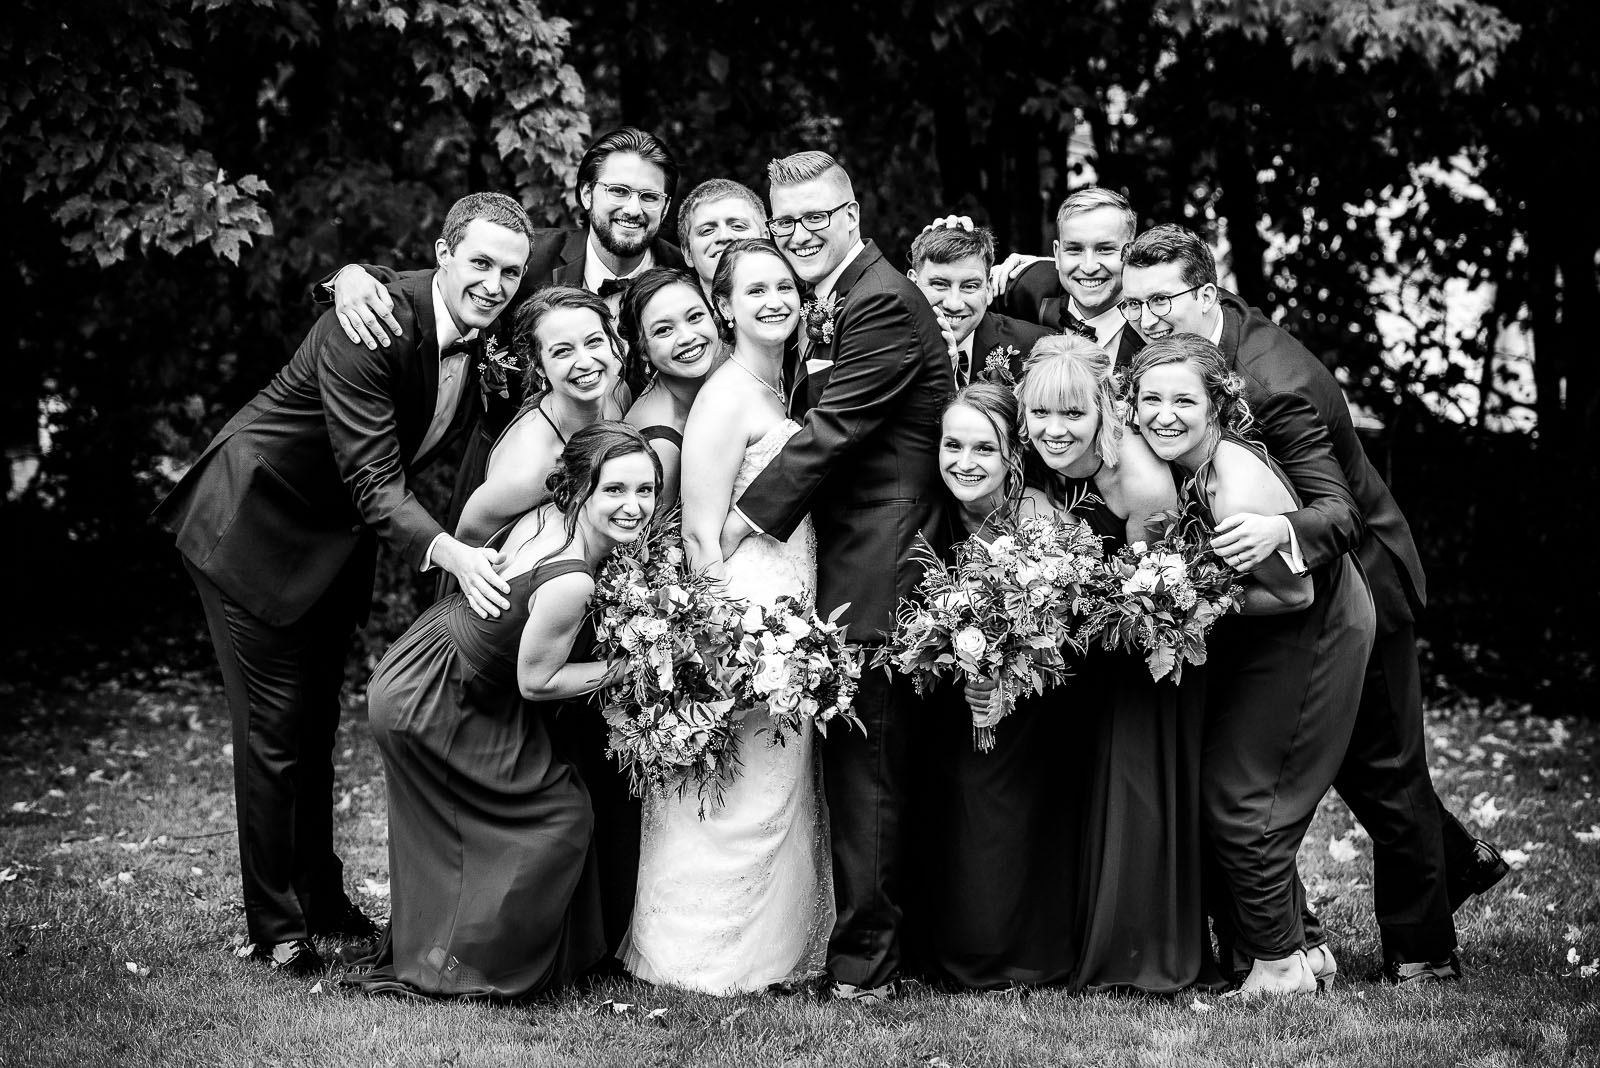 Eric_and_Christy_Photography_Blog_Wedding_Erica_Mike-22